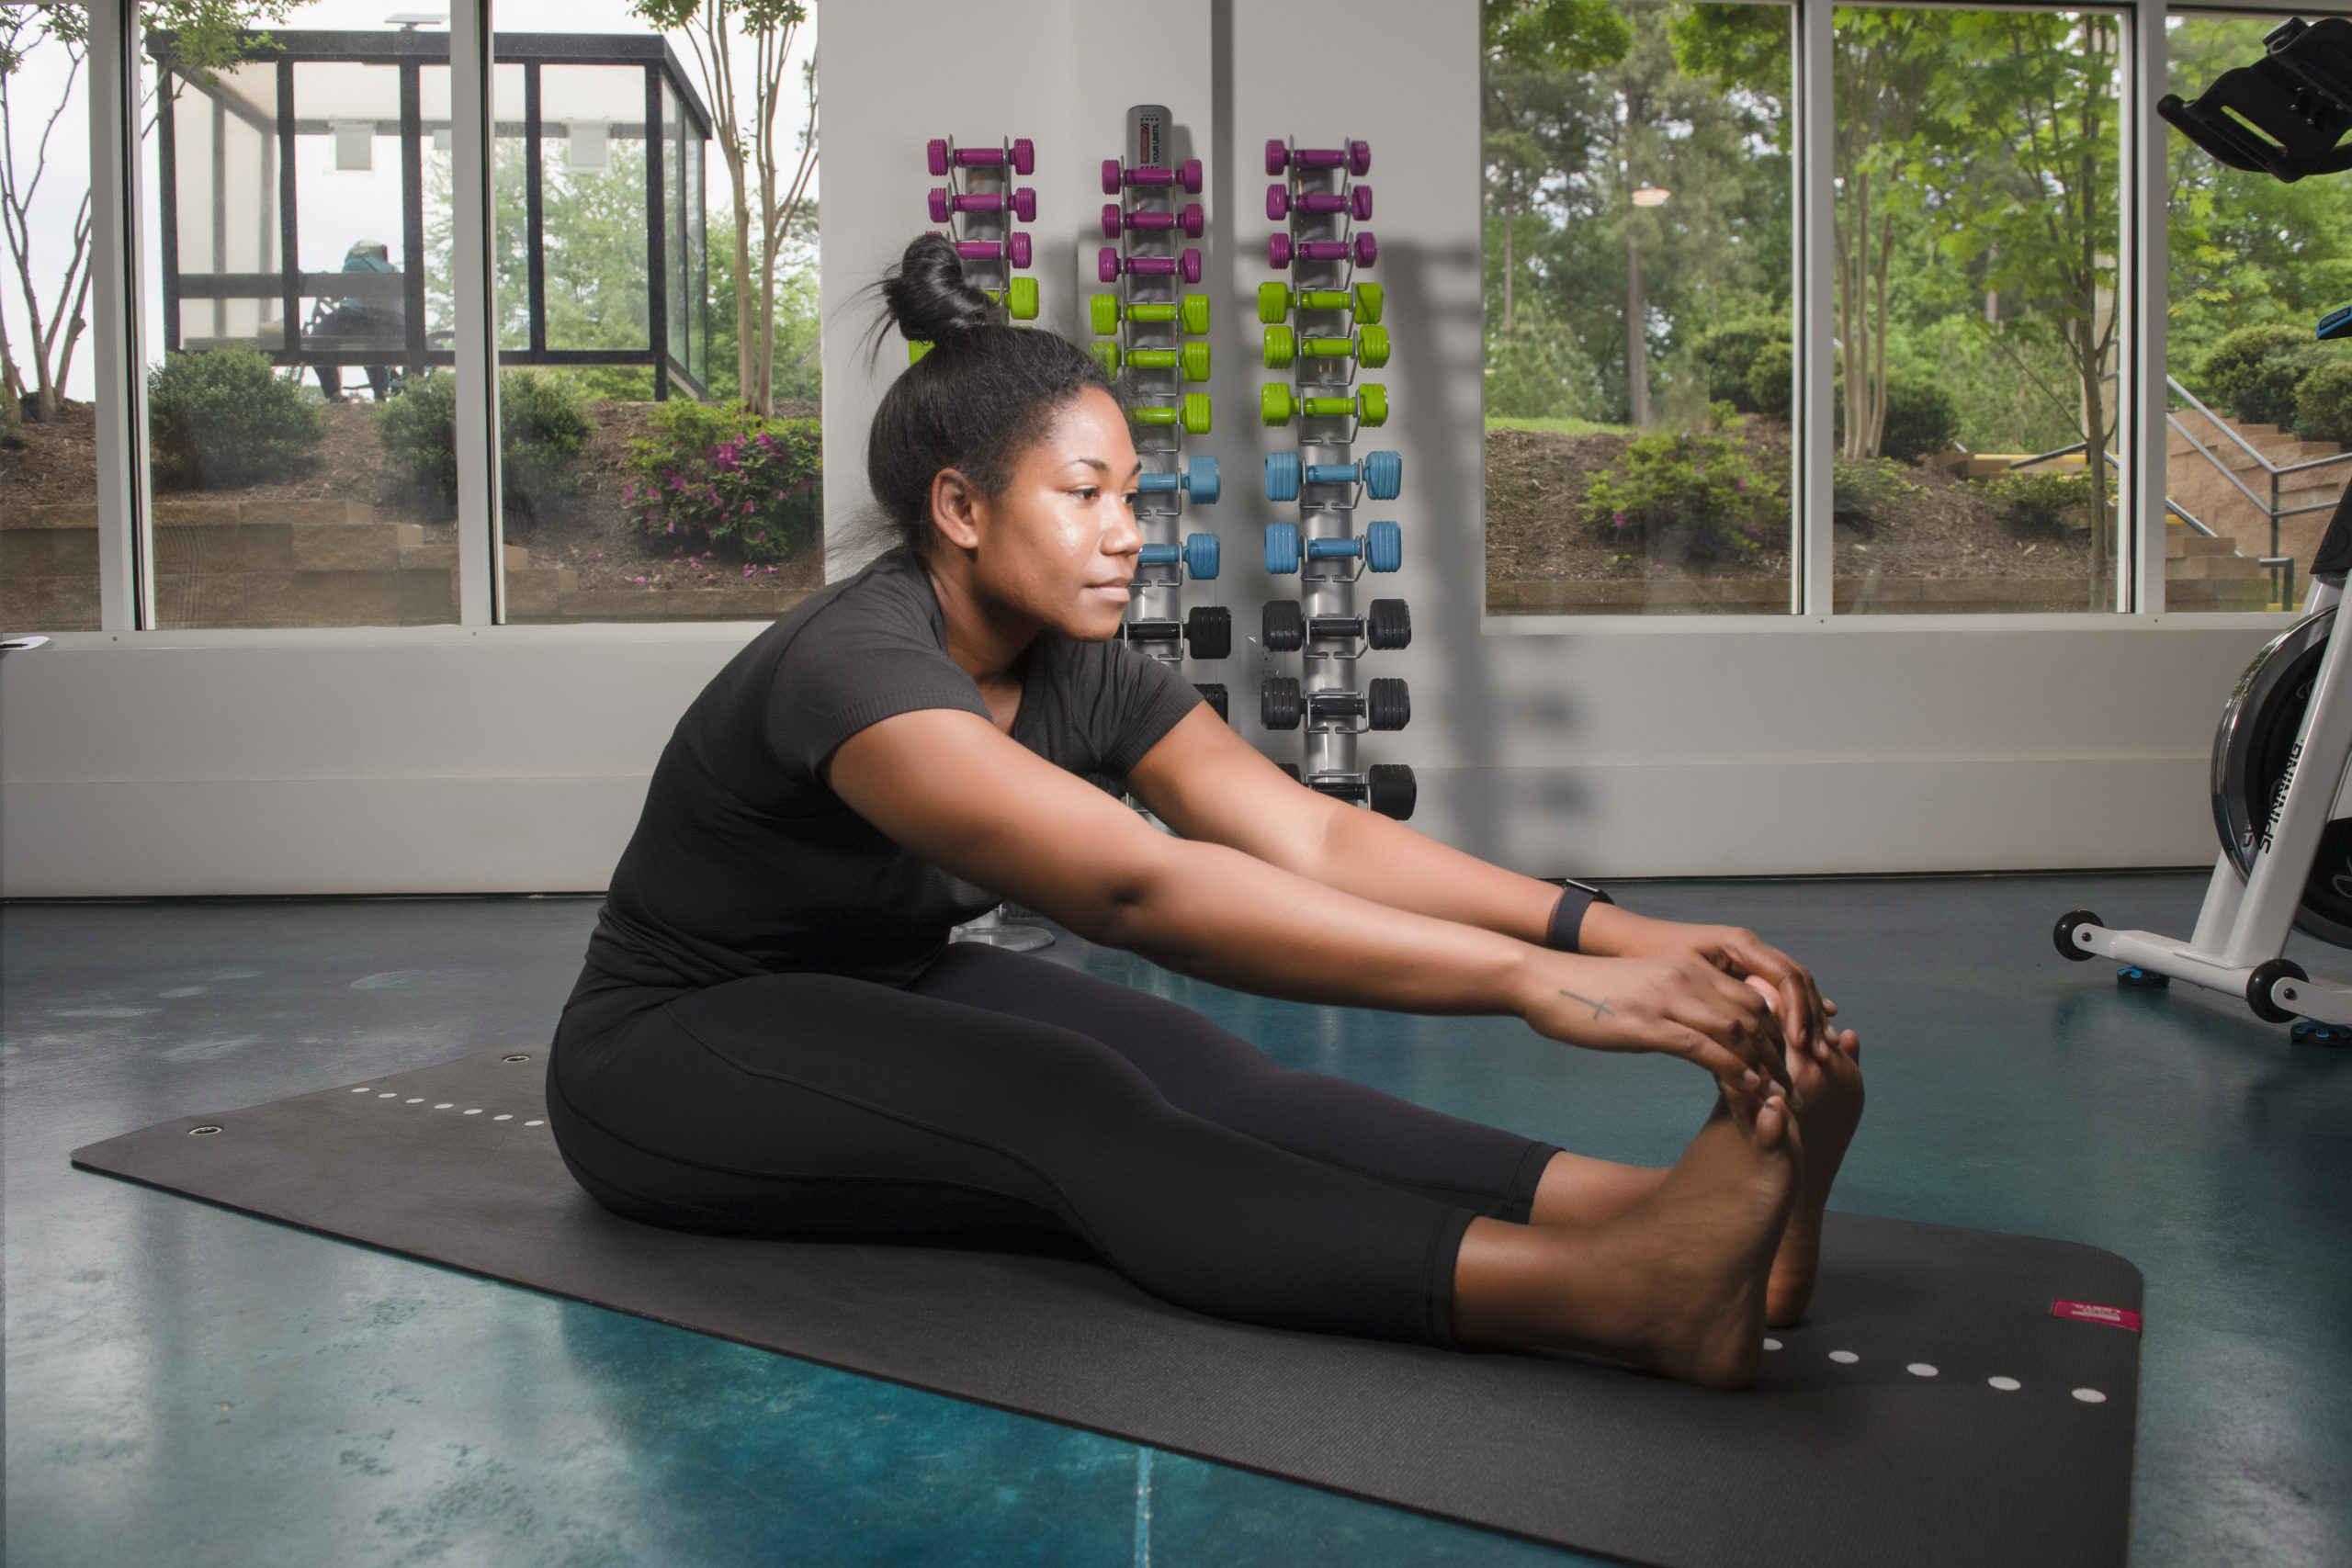 Girl stretching in fitness center during workout at Evolve